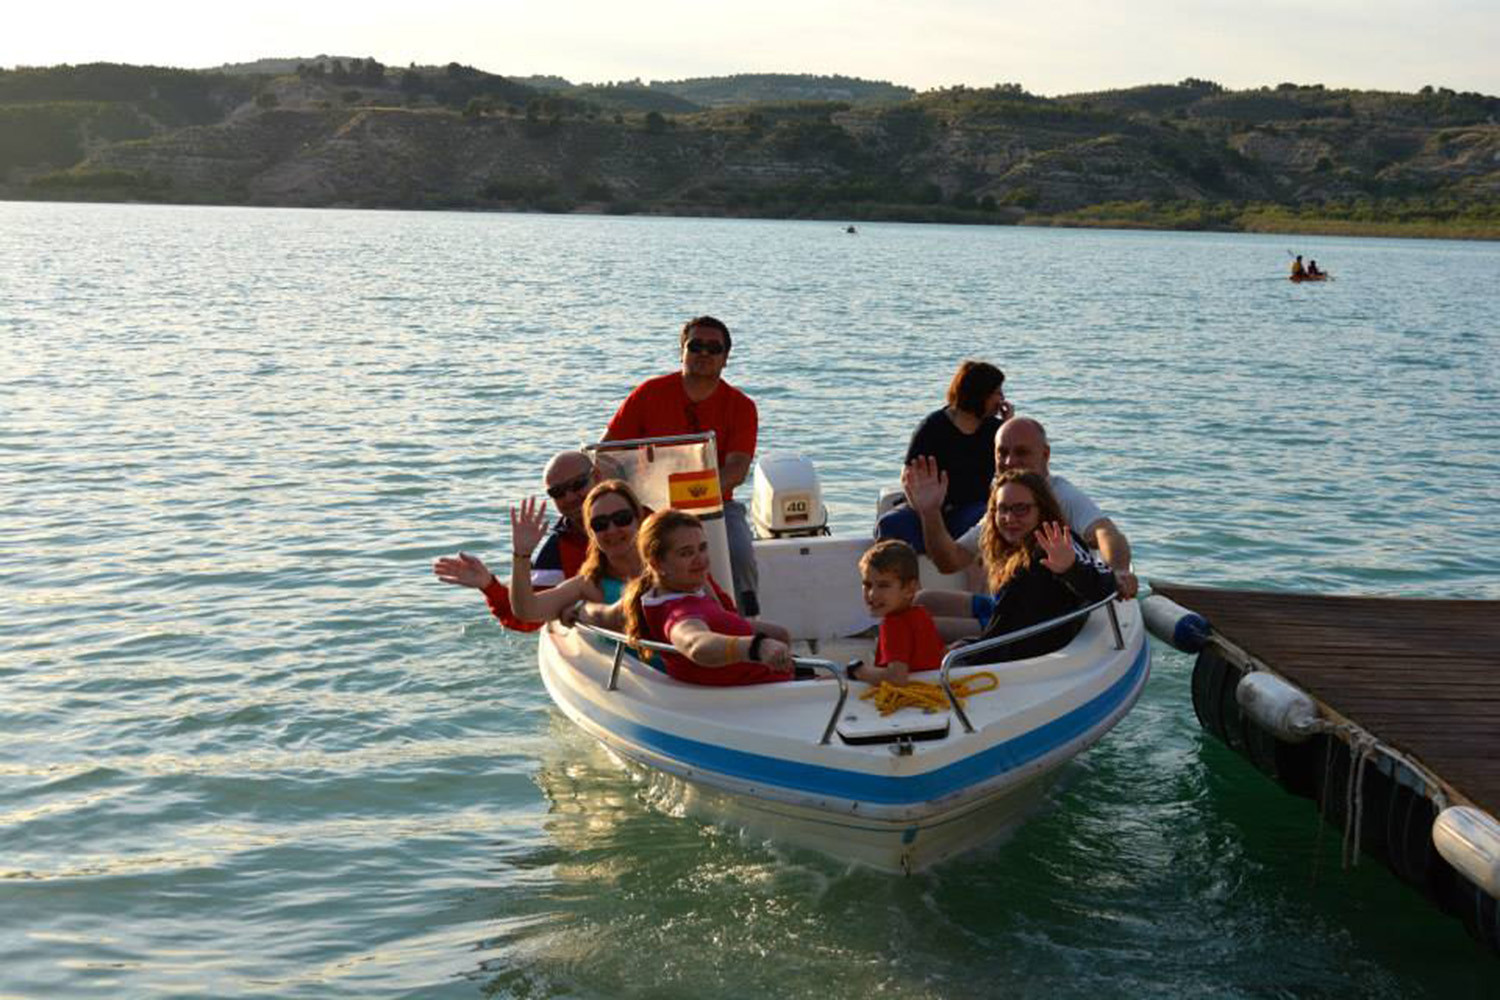 A boat trip on lake Negratin